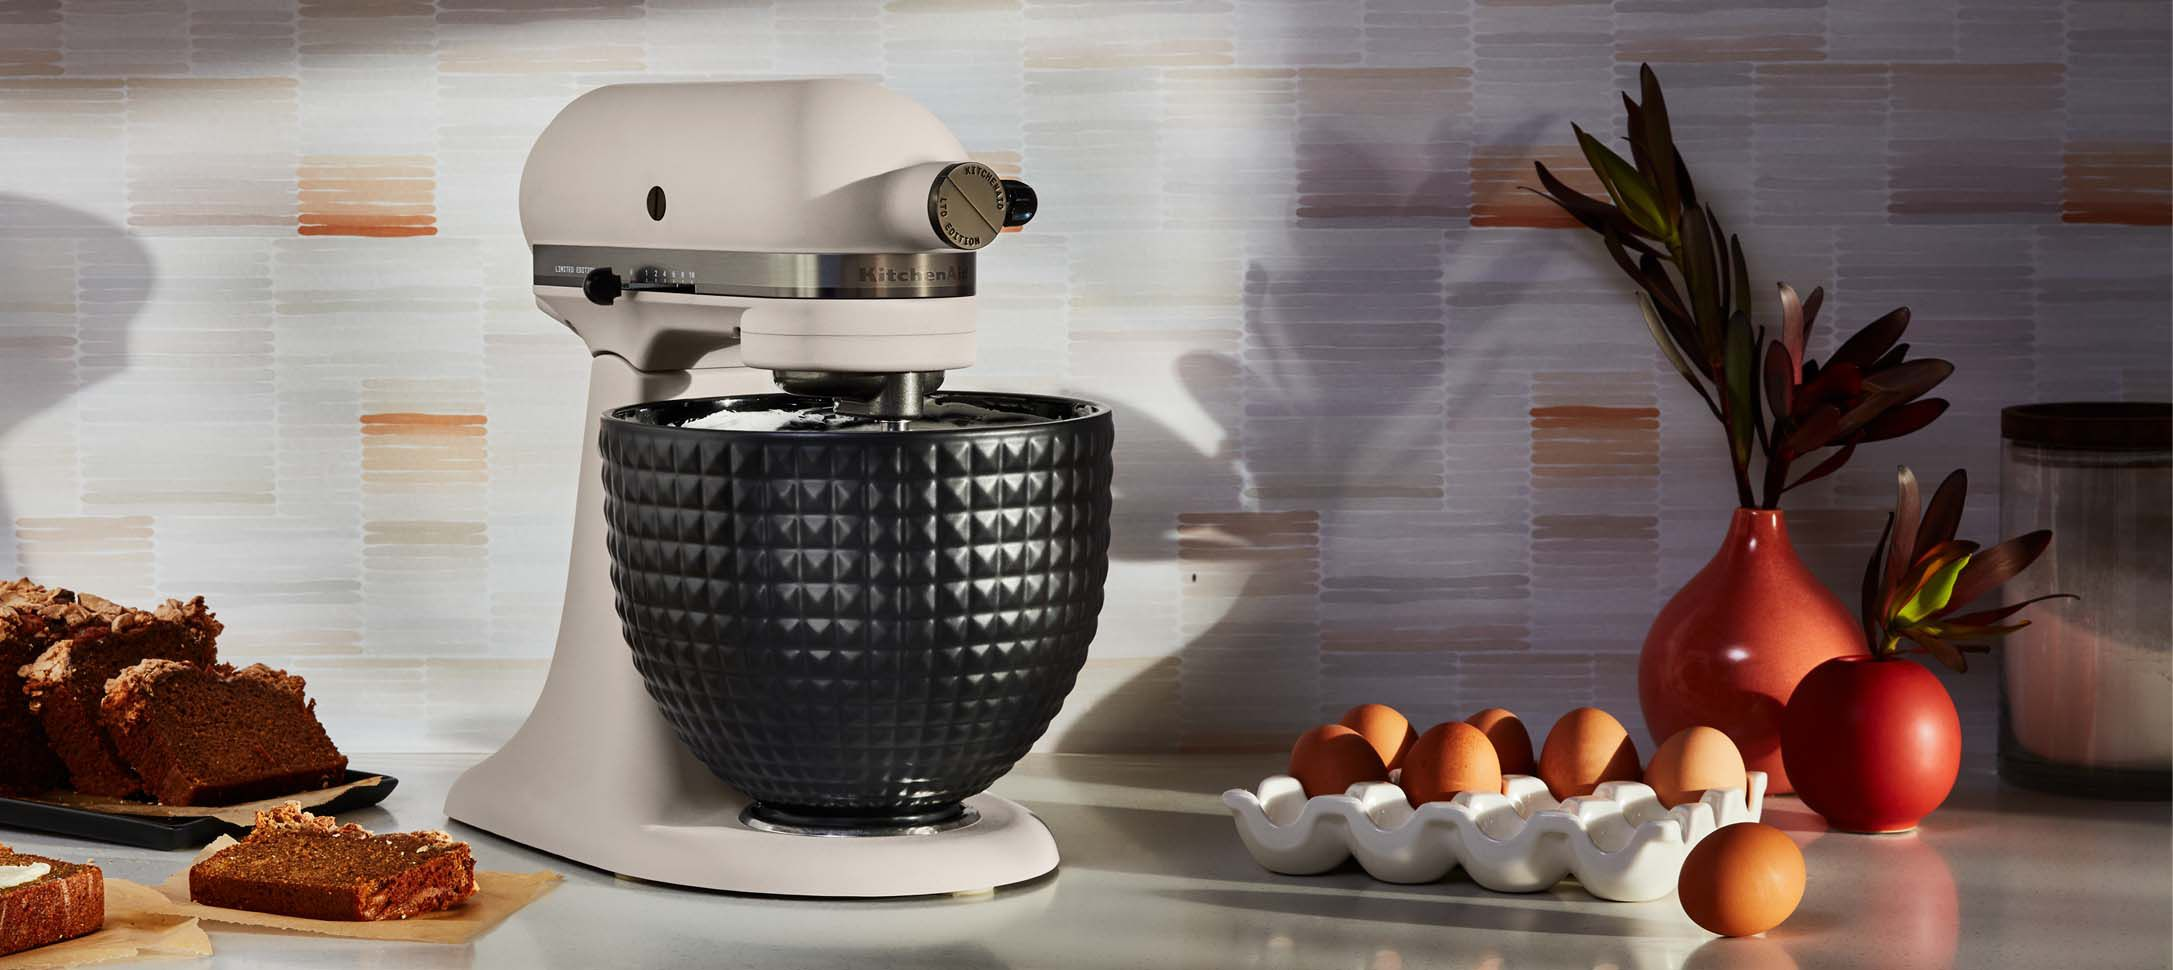 A Limited Edition Stand Mixer with a Stainless Steel Bowl surrounded by bread and eggs.